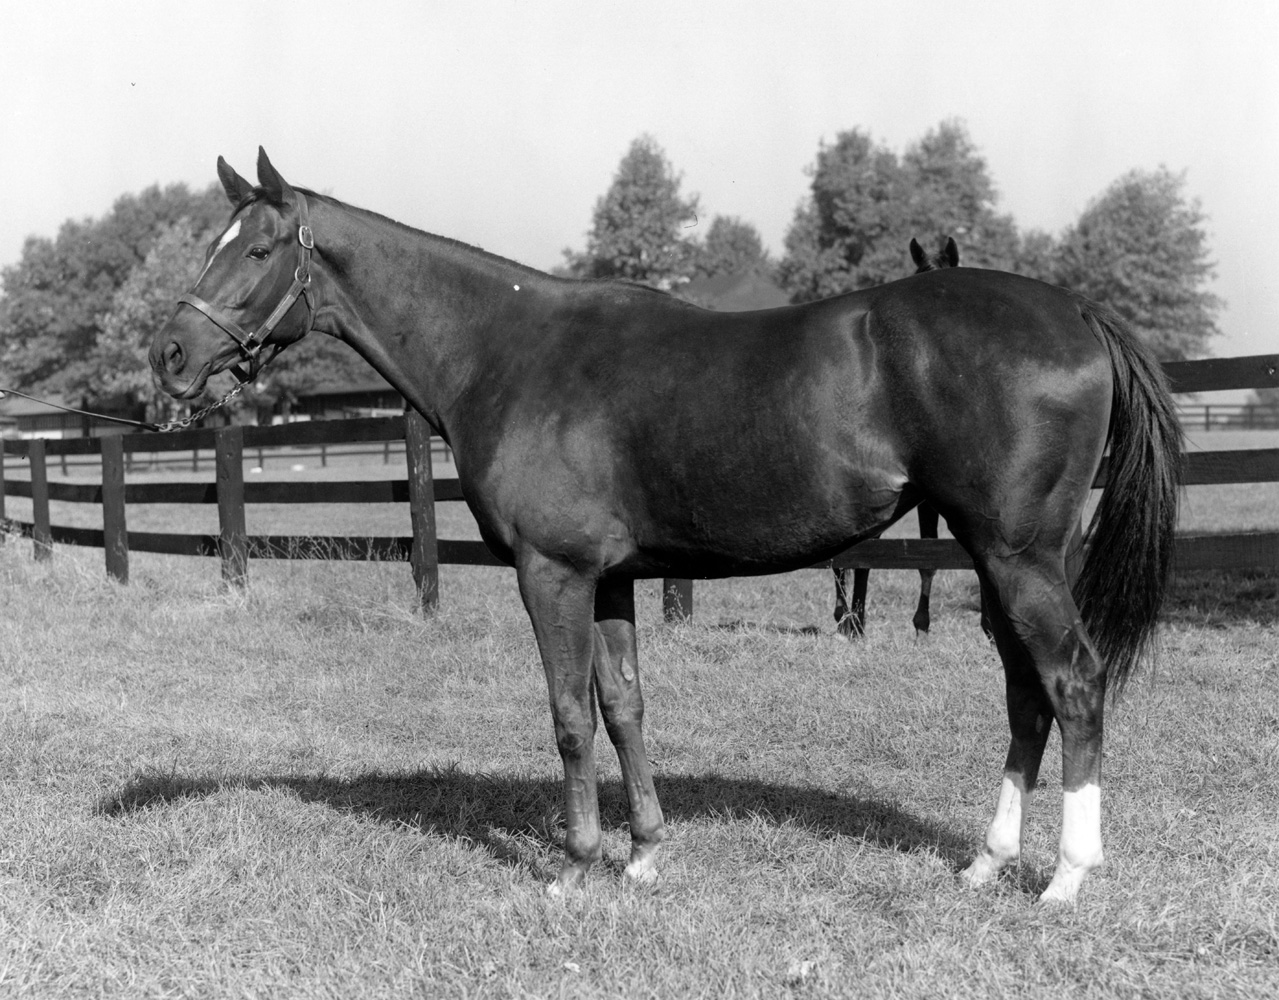 Silver Spoon at Keeneland, October 1959 (Keeneland Library Meadors Collection/Museum Collection)